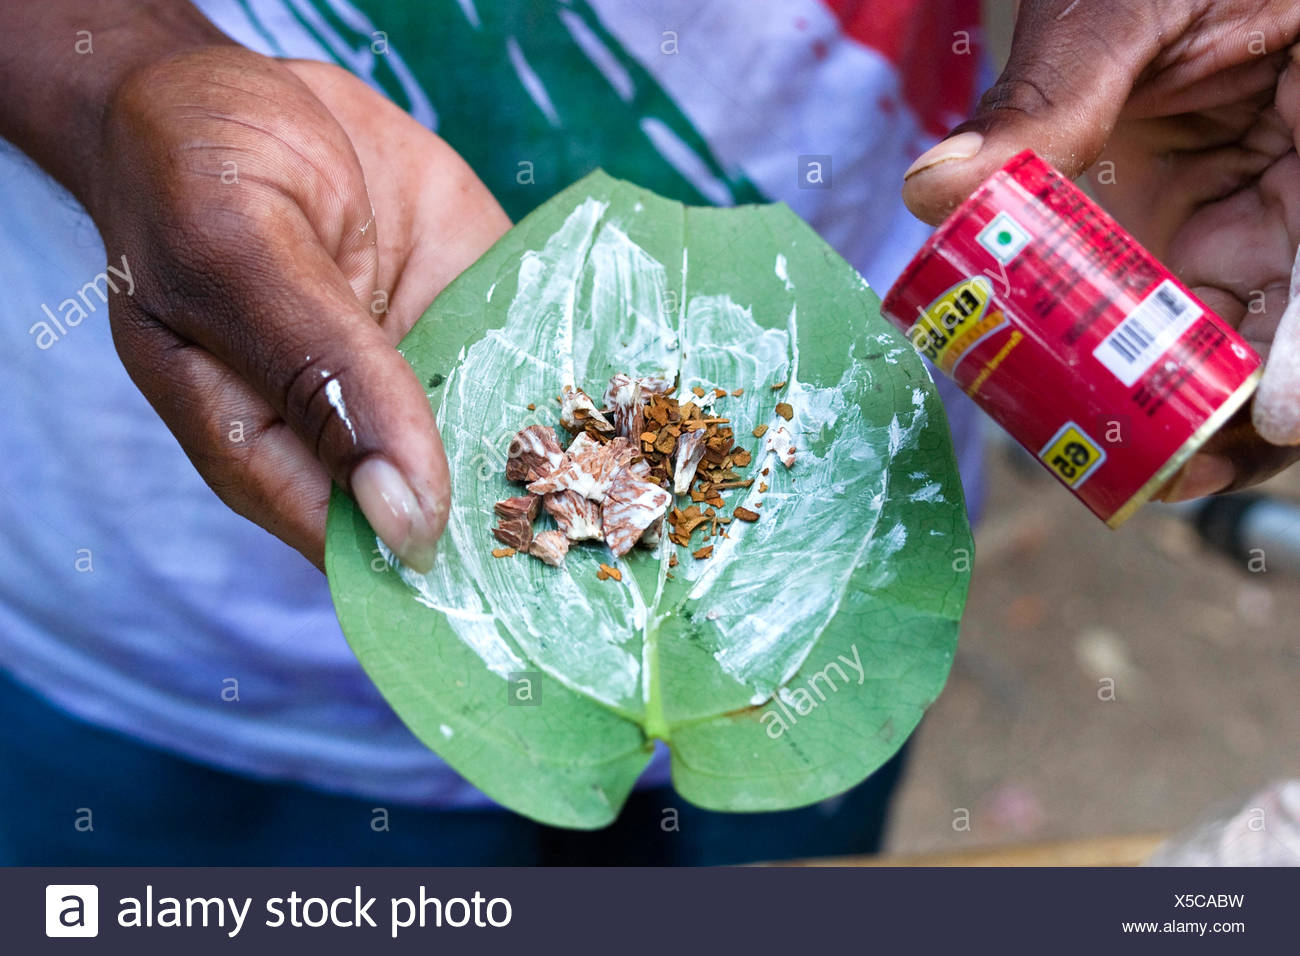 betel palm (Areca catechu), betelnut, Areca catechu; with quicklime on betelpepper leaf Piper betle, India, Andaman Islands - Stock Image